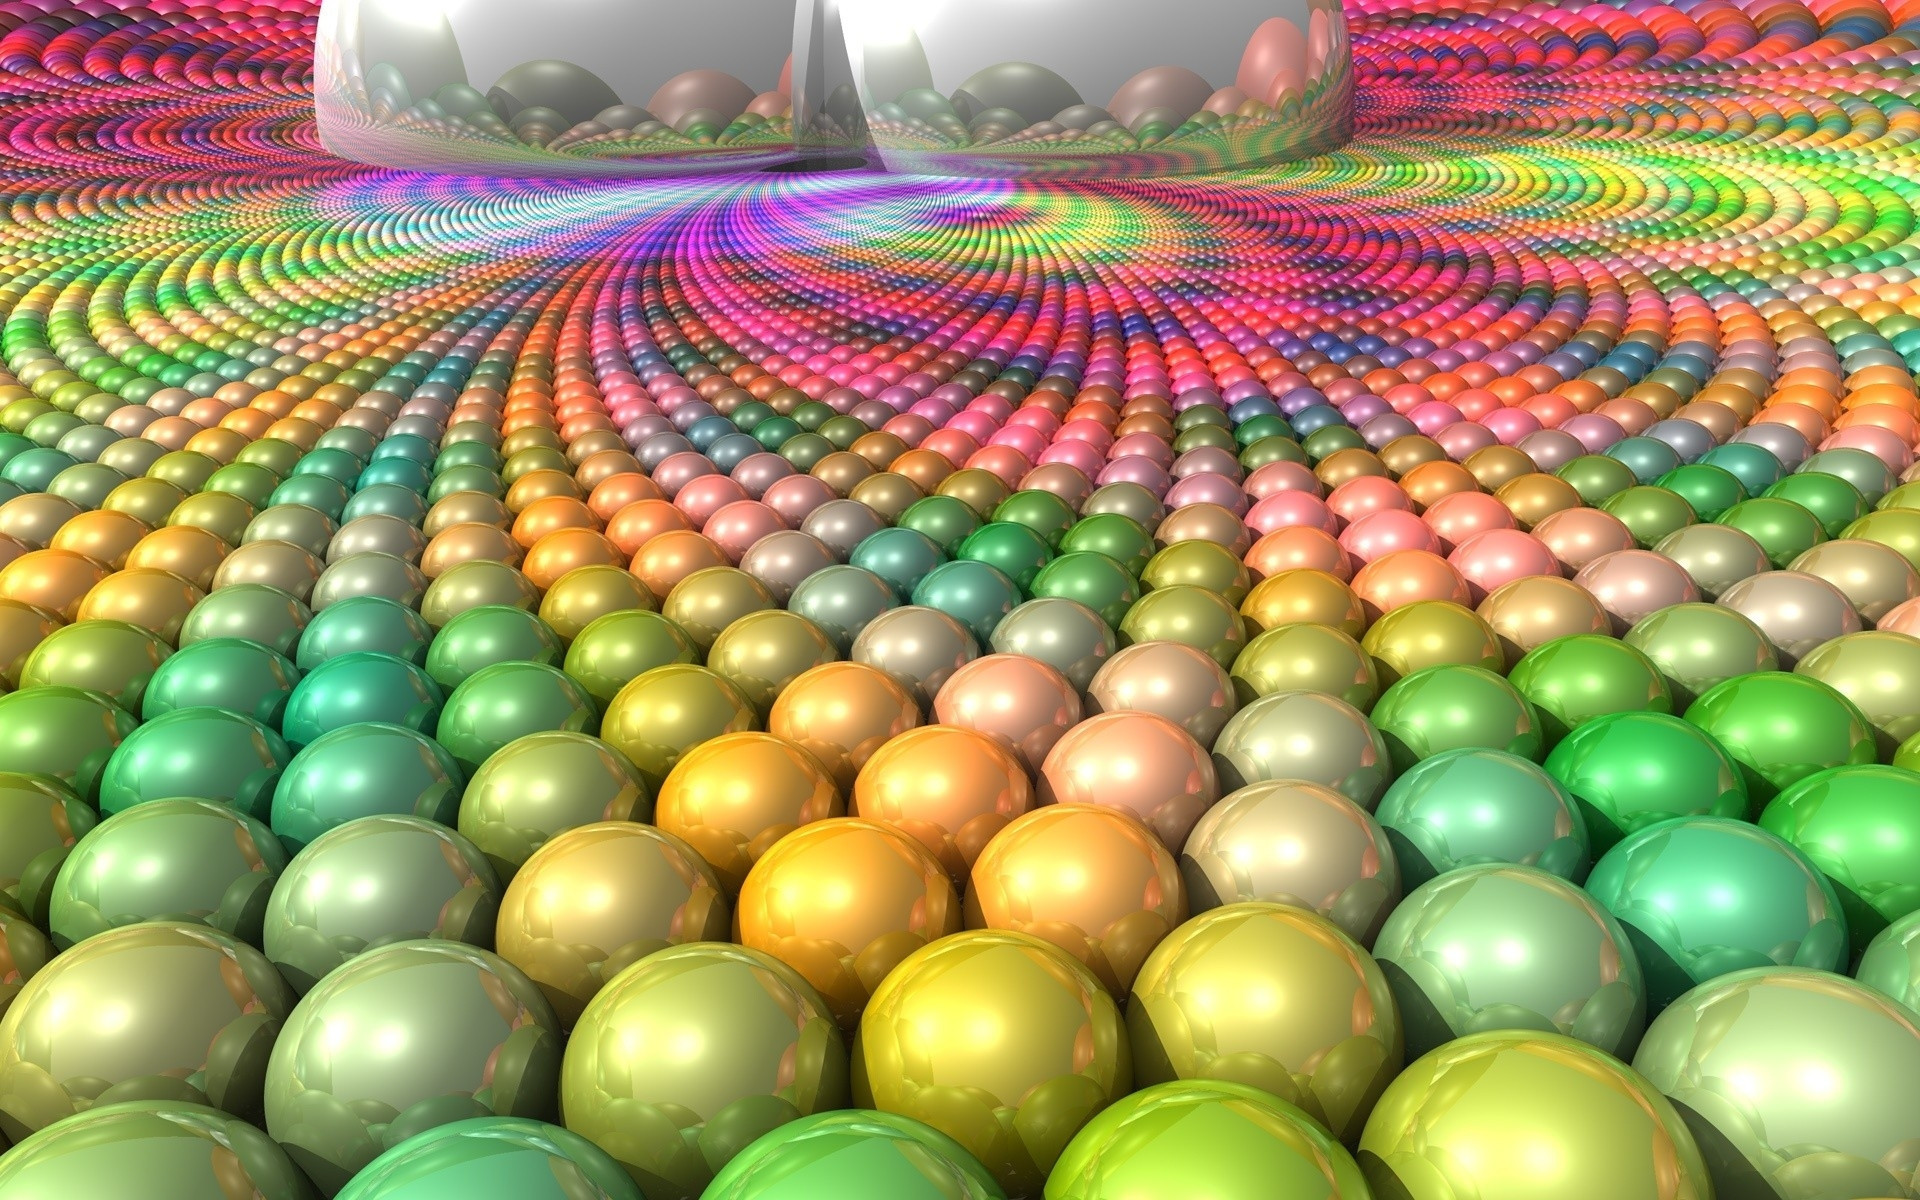 BALL SURFACE MULTI COLORED BRIGHT 3D Colorful Wallpaper.